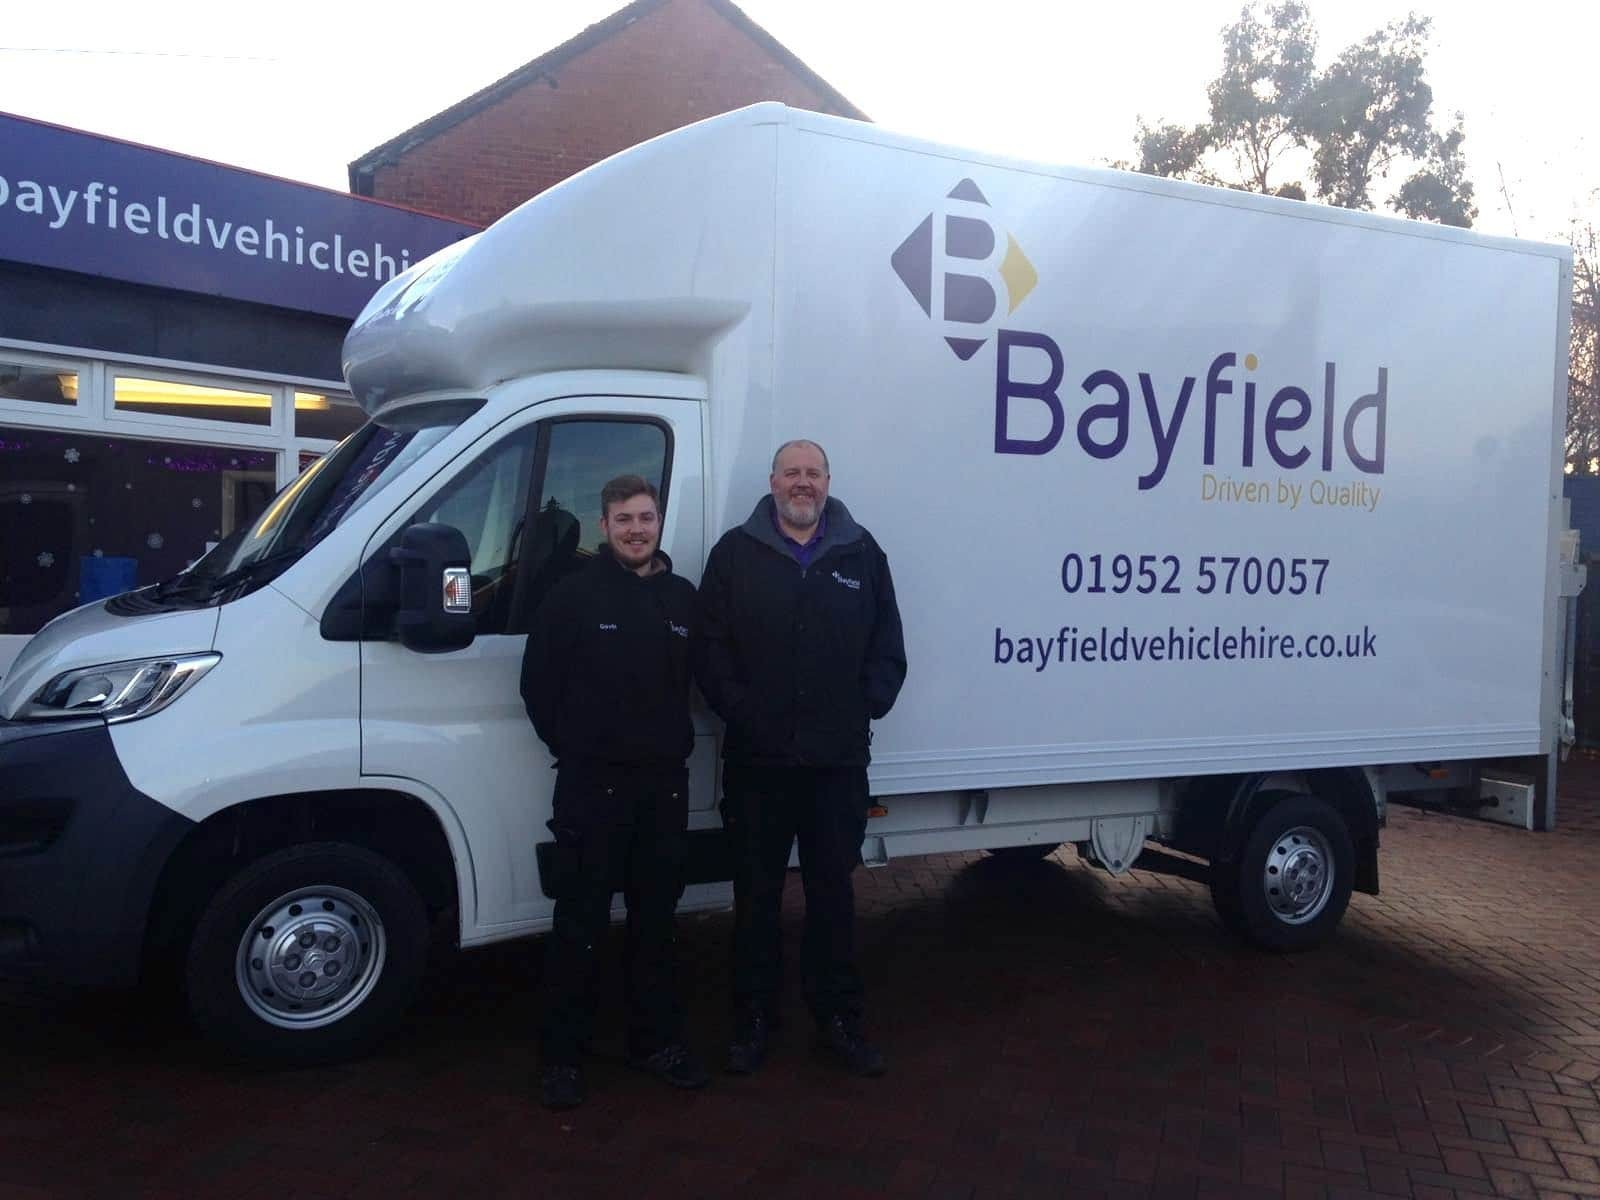 Why use Bayfield Vehicle Hire for your van hire in Telford?